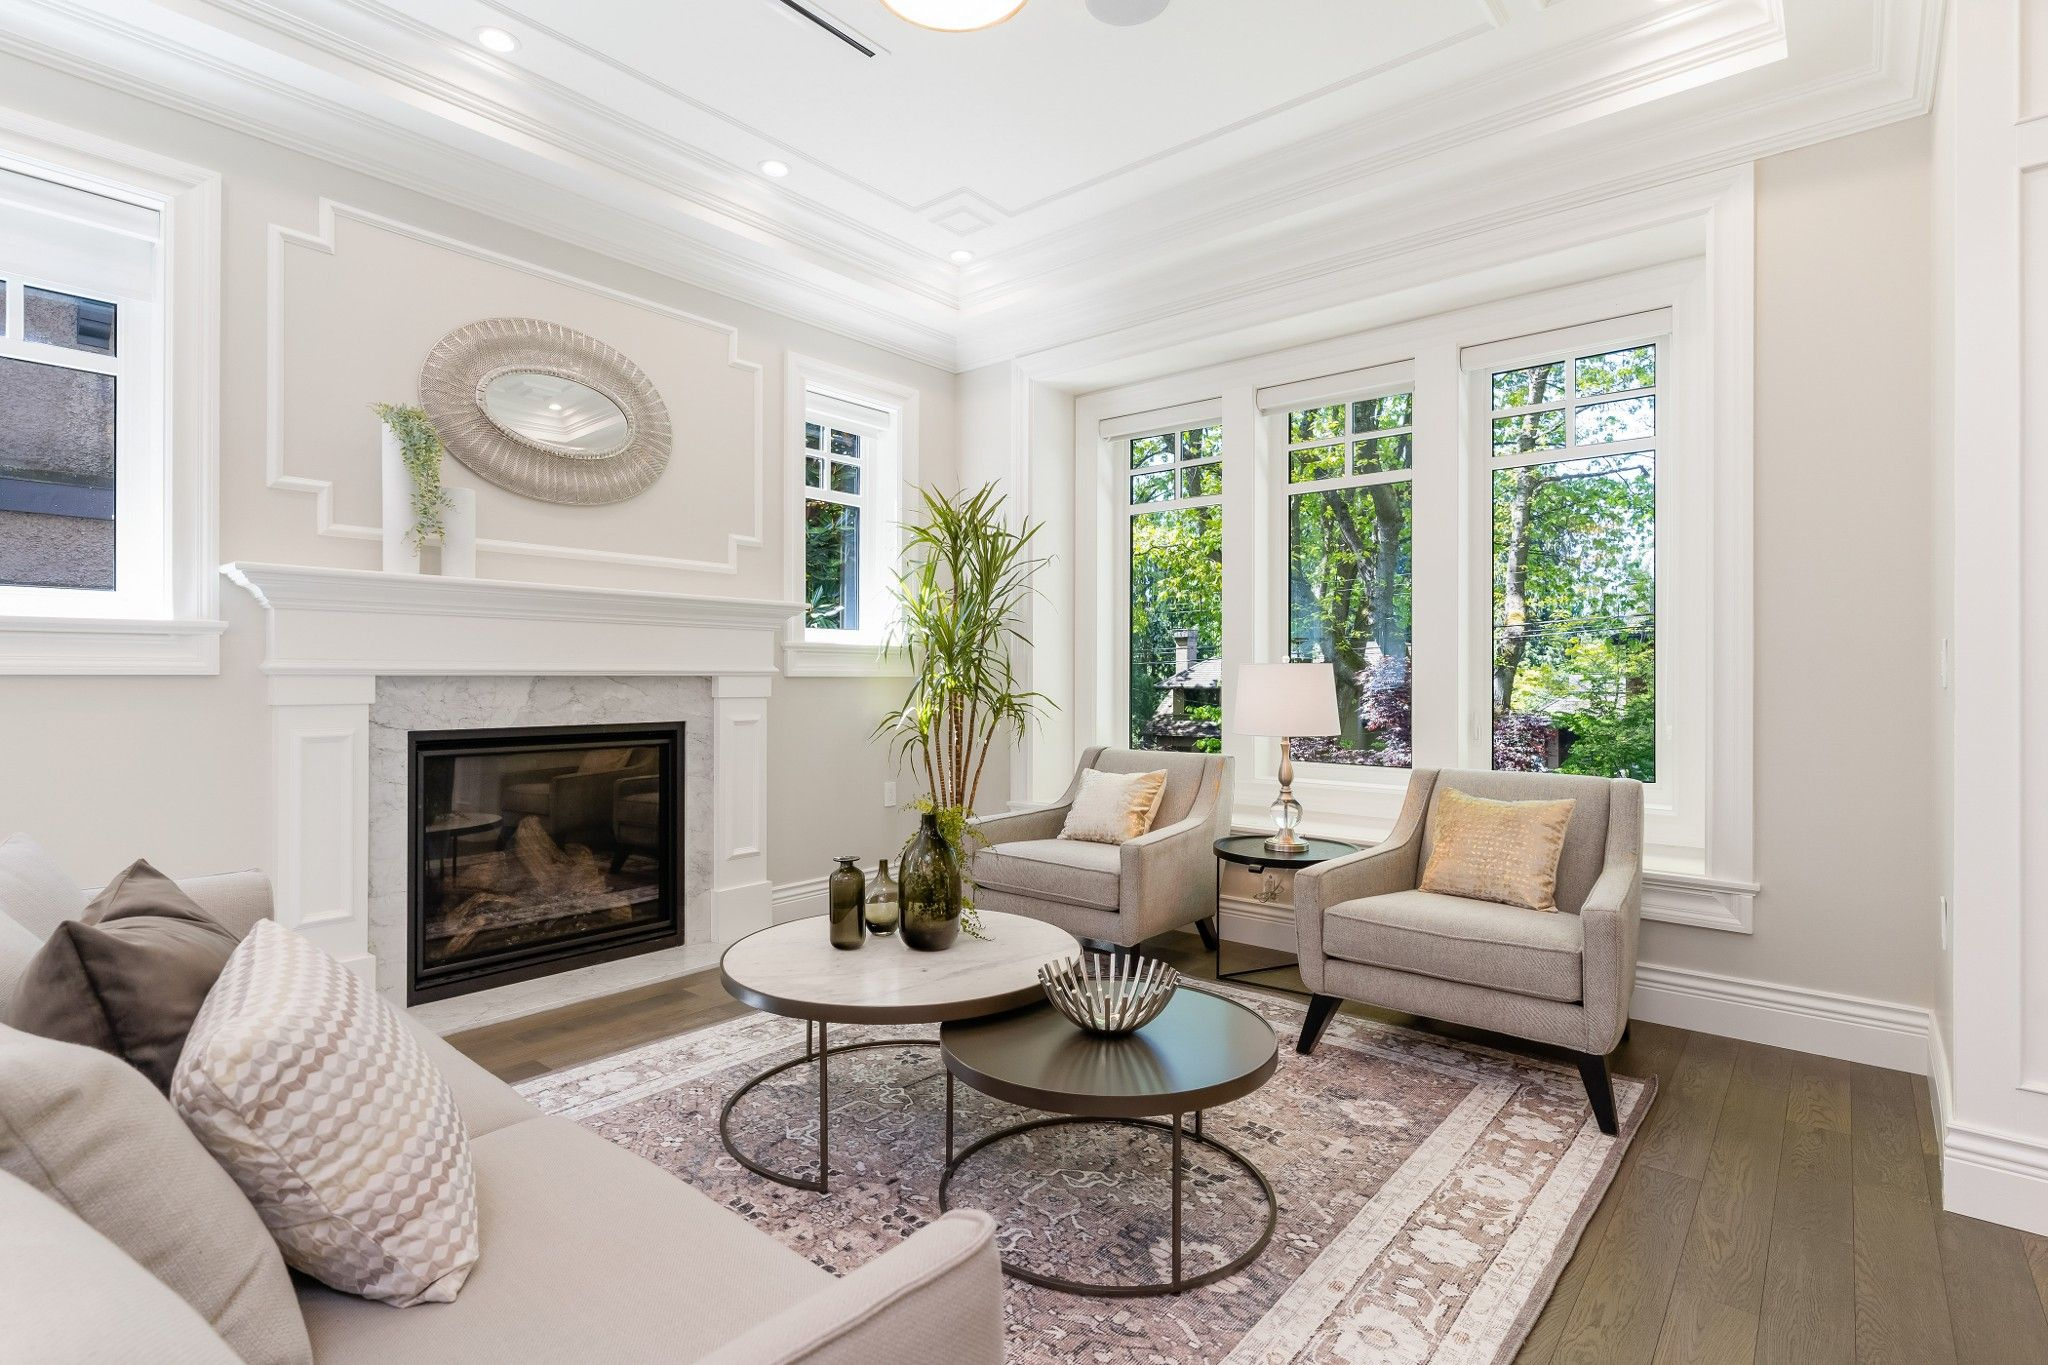 Photo 12: Photos: 5756 ALMA STREET in VANCOUVER: Southlands House for sale (Vancouver West)  : MLS®# R2588229